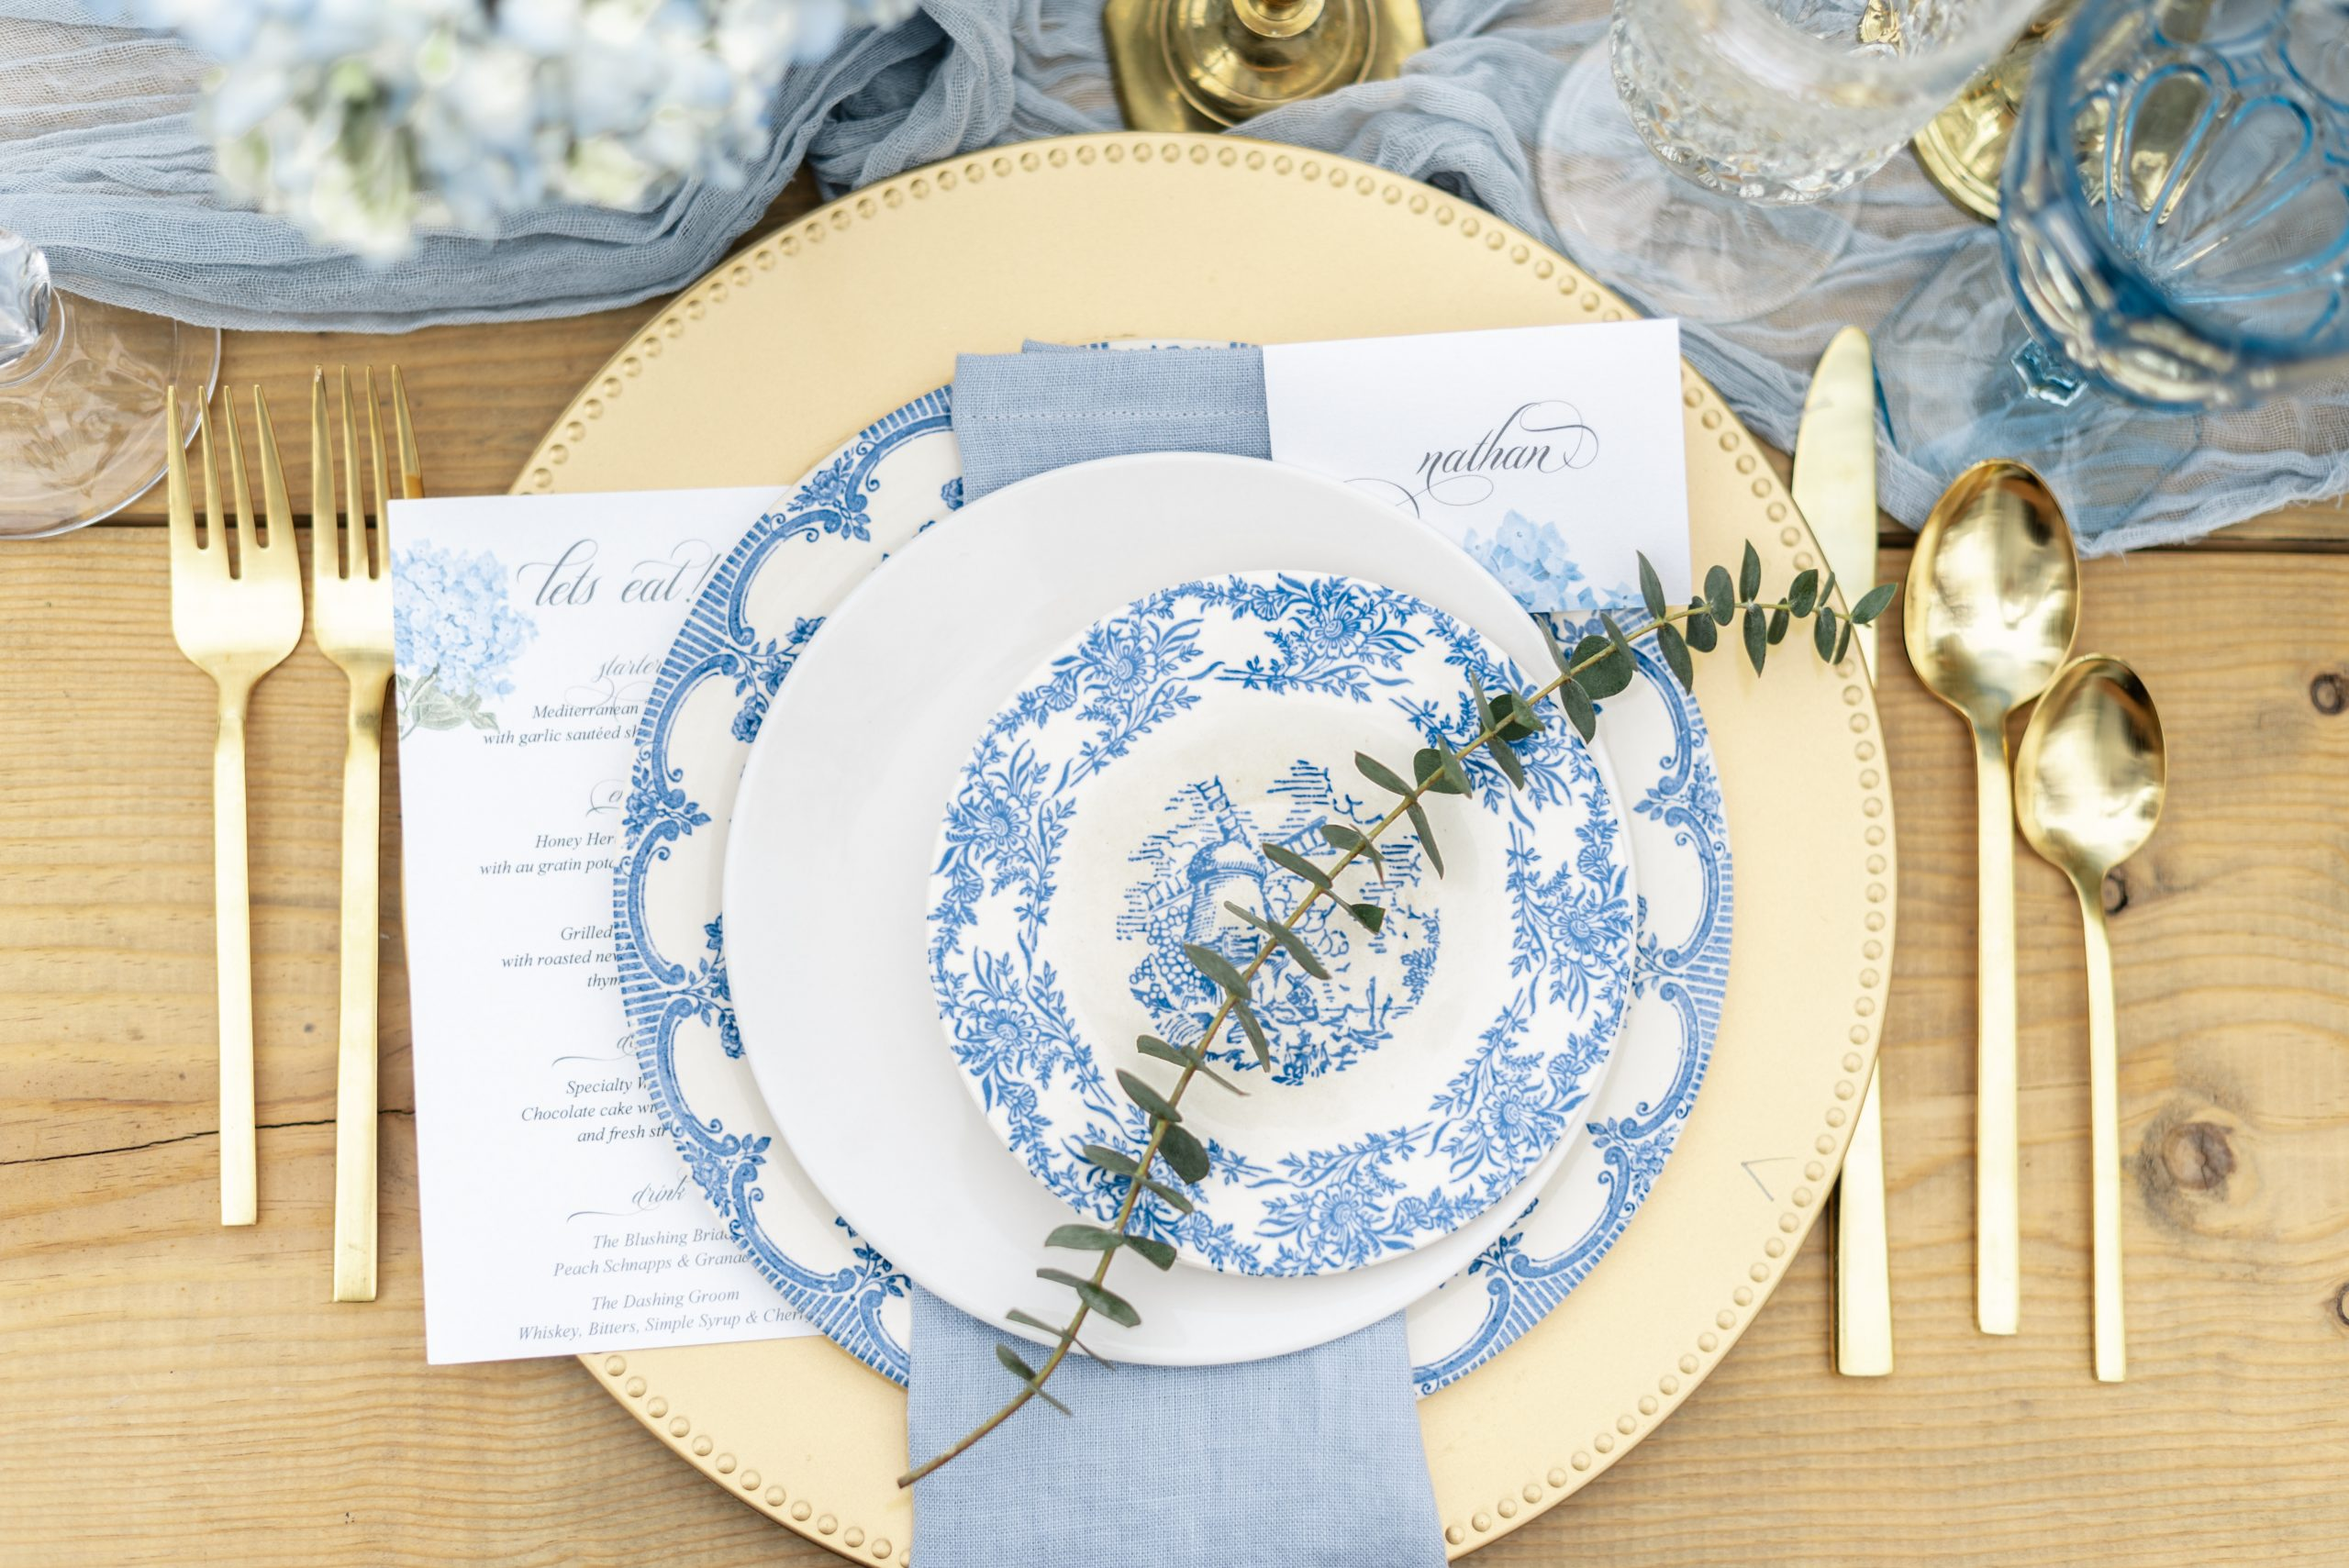 Designed by Wild Bliss & Co., this European inspired tablescape feels effortlessly timeless.